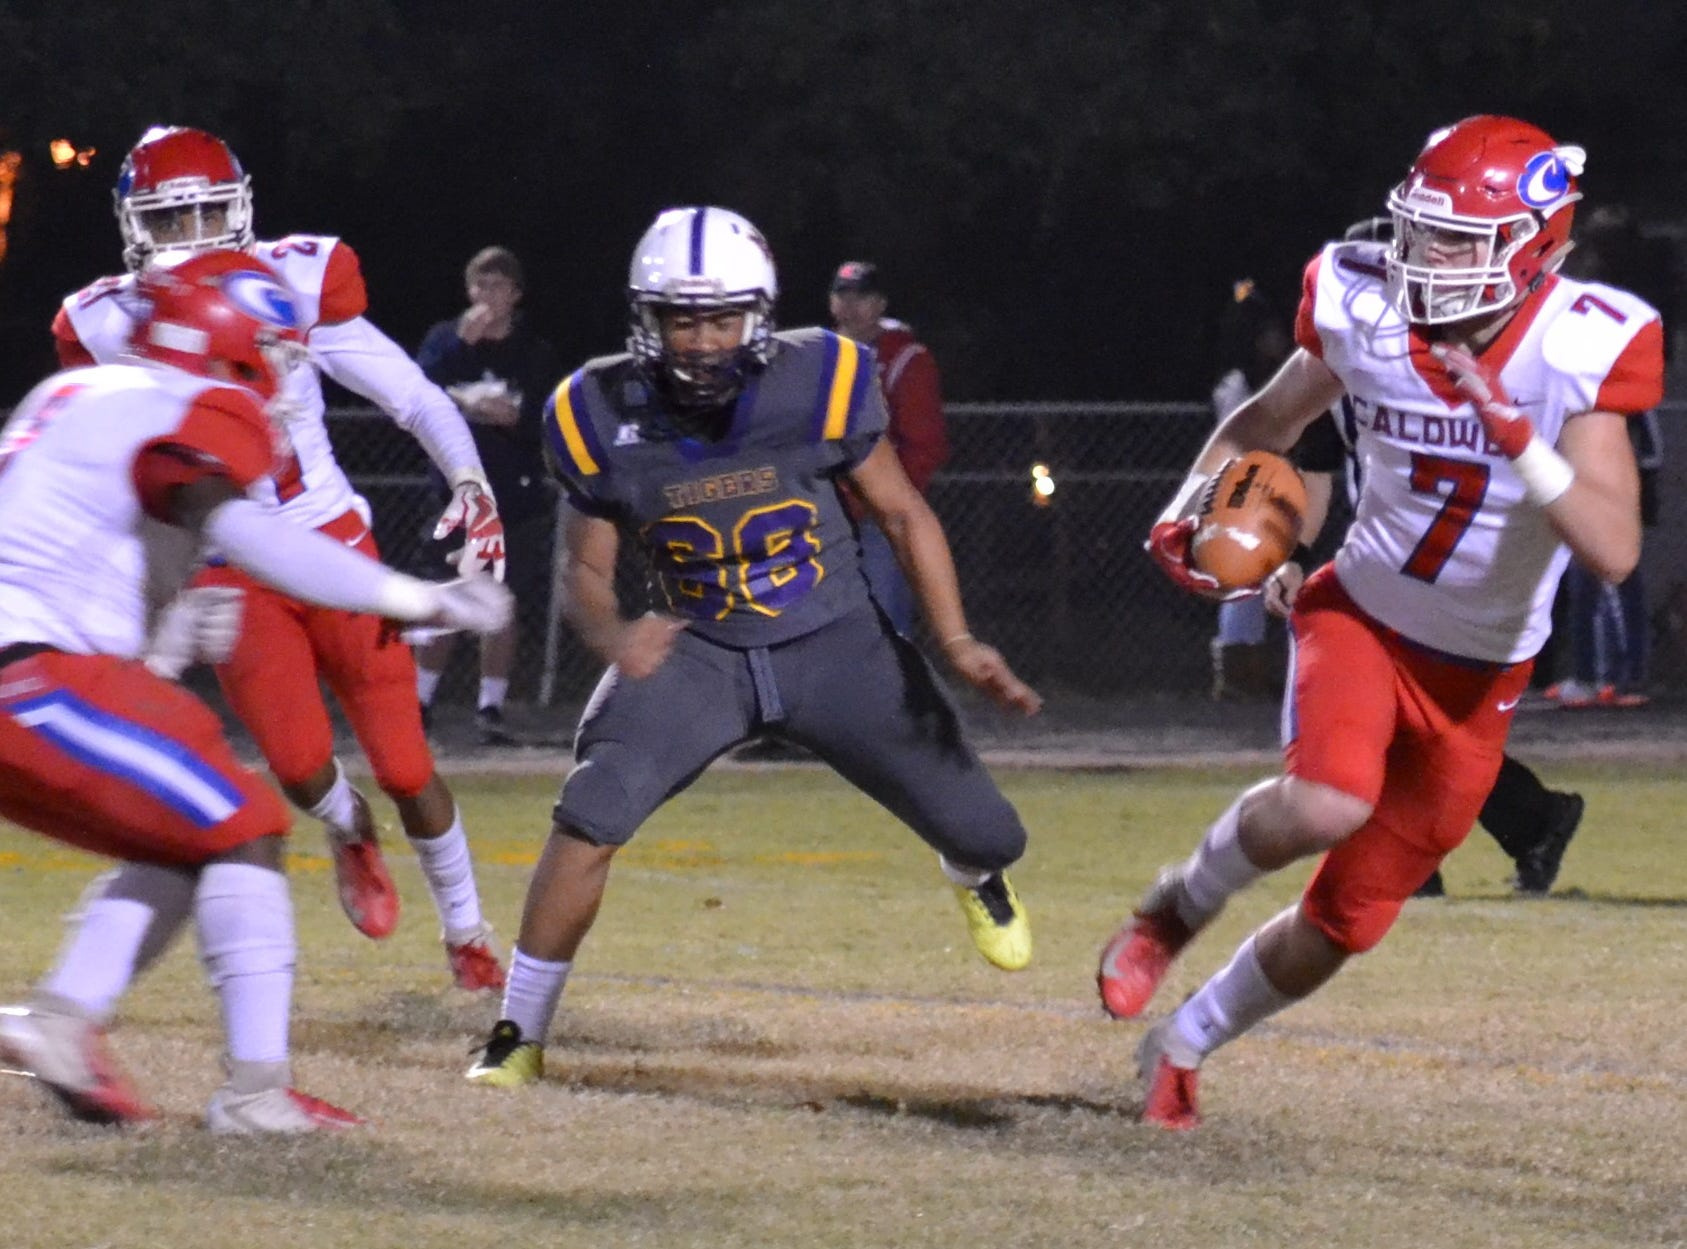 Caldwell's Cole Johnston (7) looks for room to run. Marksville and Caldwell met in the regular season finale Friday night with Caldwell edging Marksville 13-8.